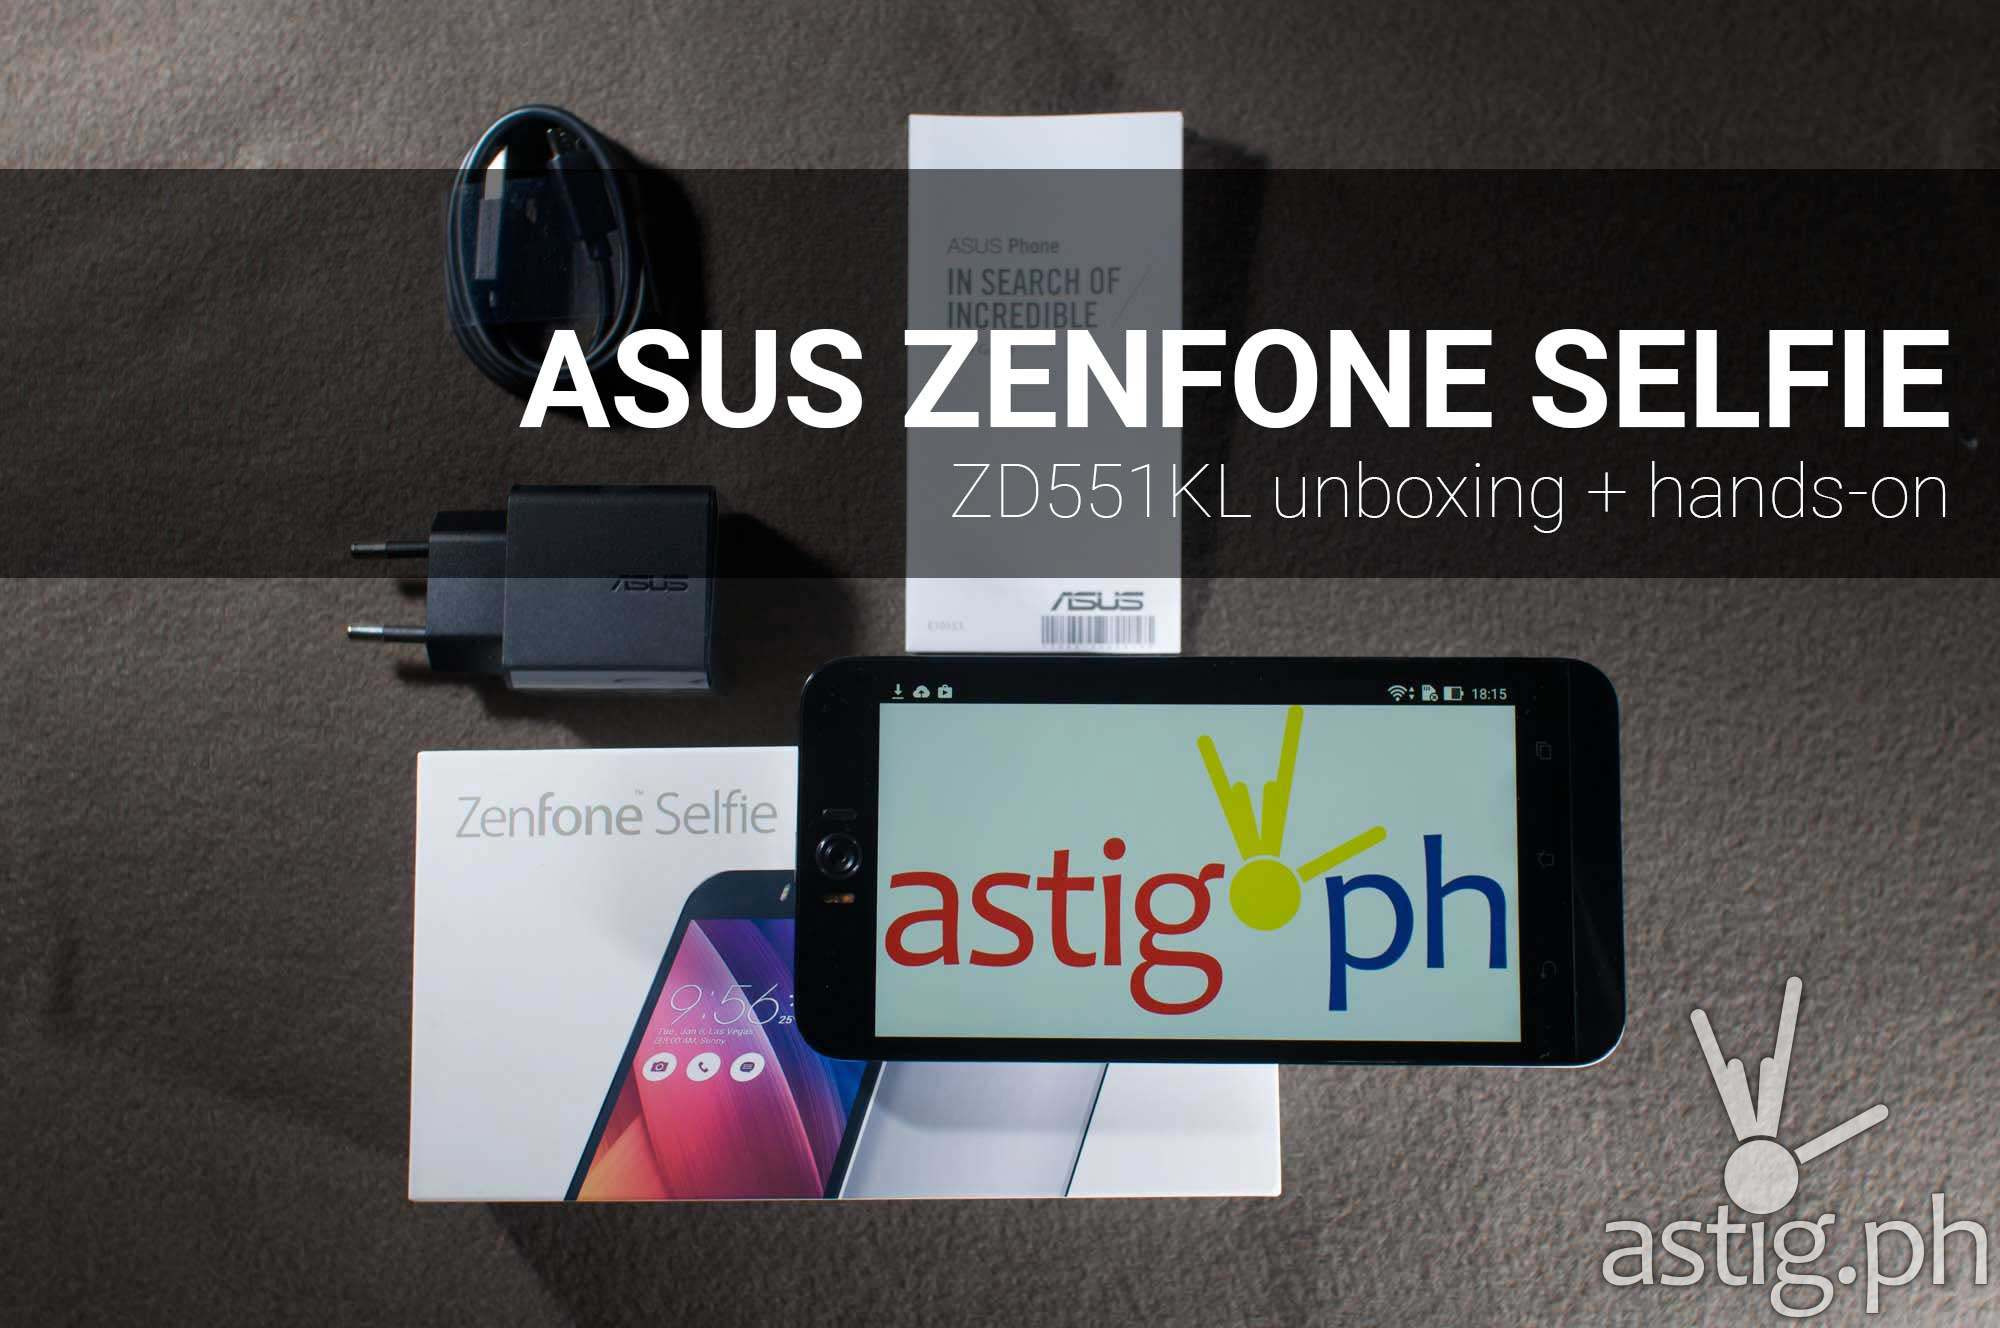 ASUS Zenfone Selfie unboxing + hands on review